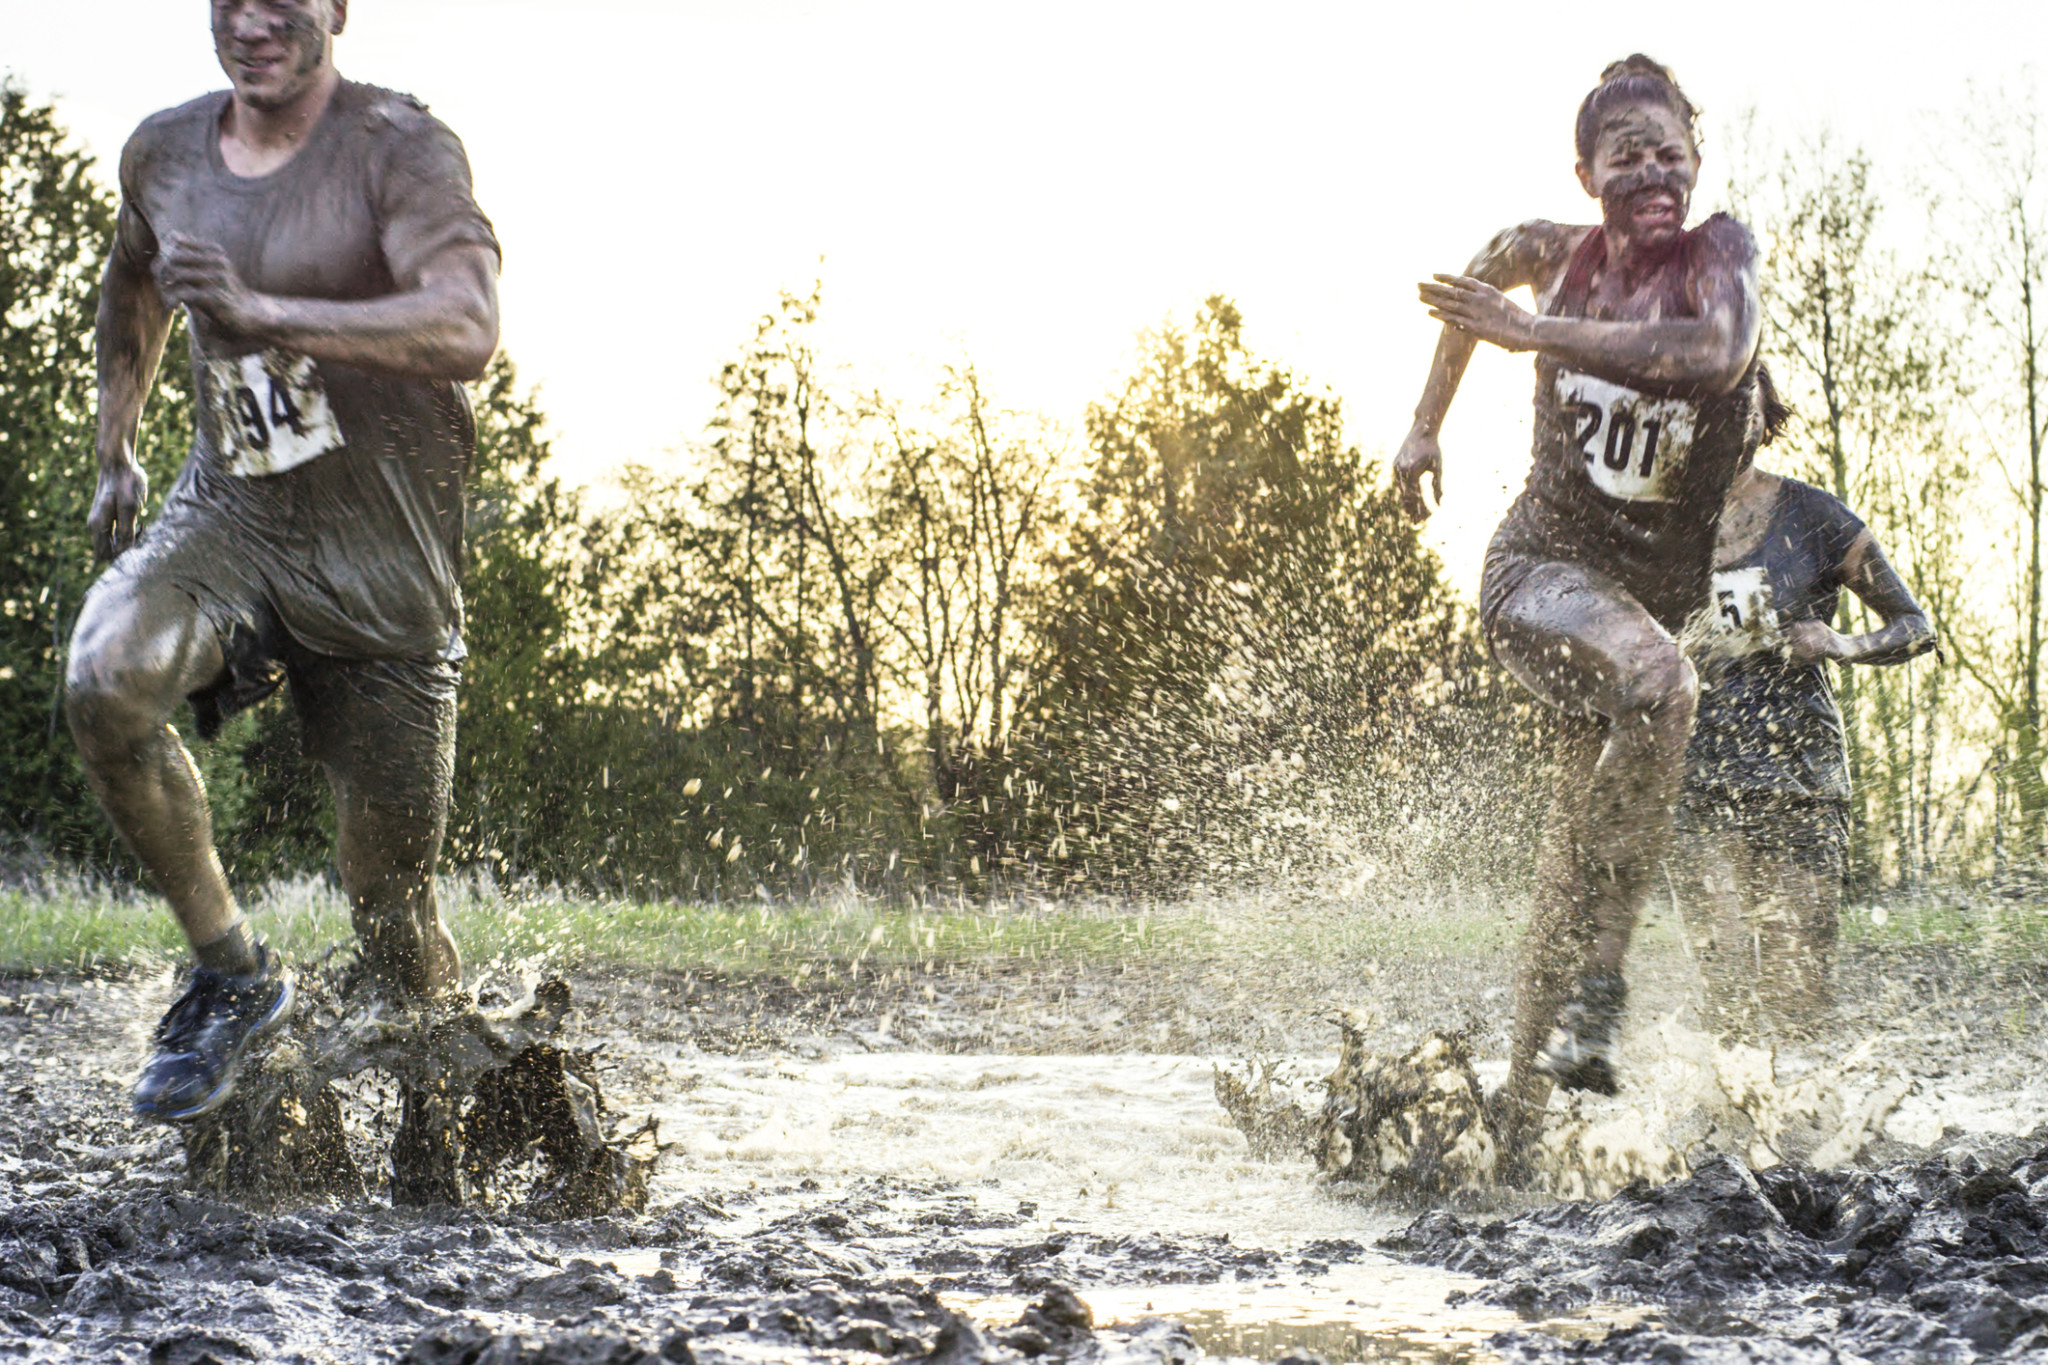 Insurance for Mud Races